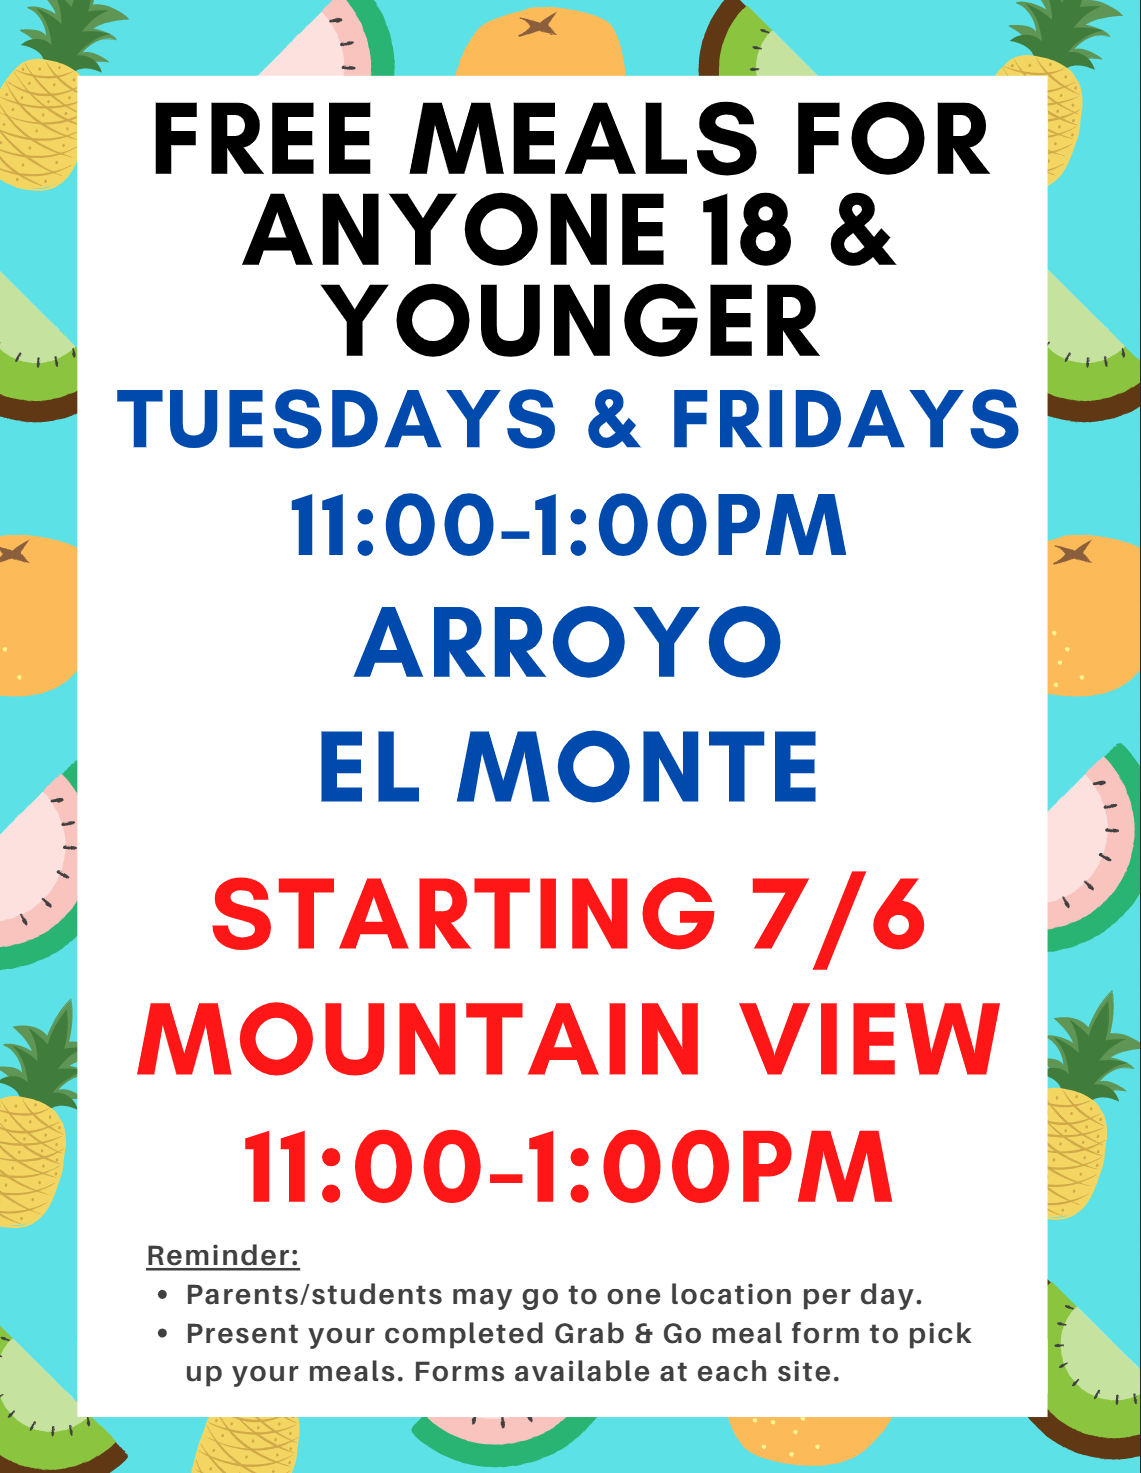 El Monte Union High School District is also serving meals to all children 18 and younger! Tuesdays & Fridays (11:00 - 1:00pm at Arroyo, El Monte, and Mt. View)